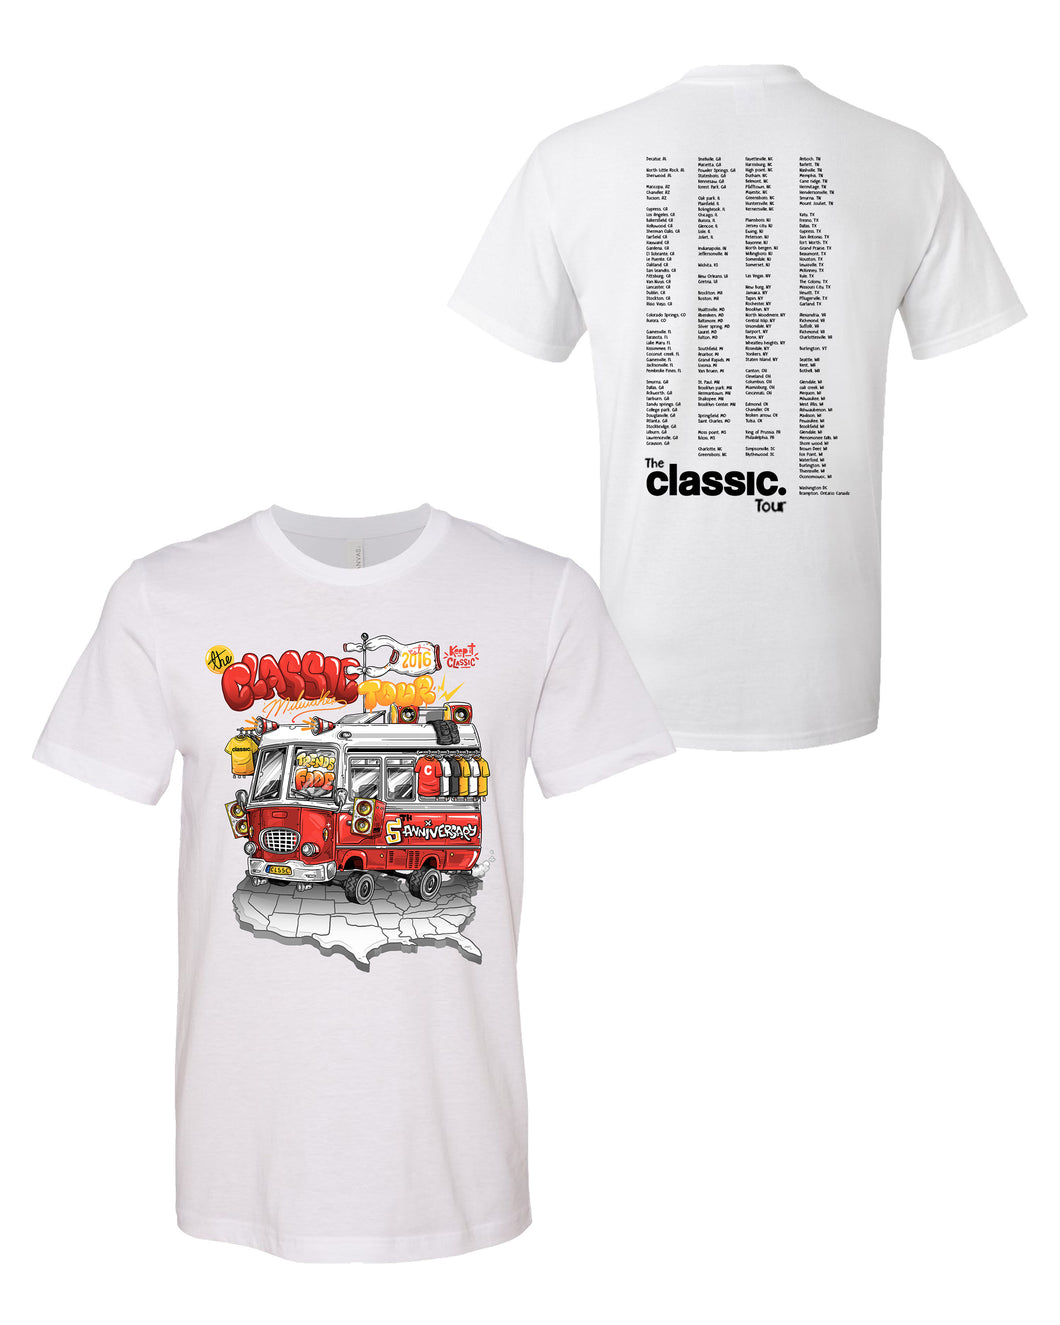 *New Arrival* The Classic Tour (white)